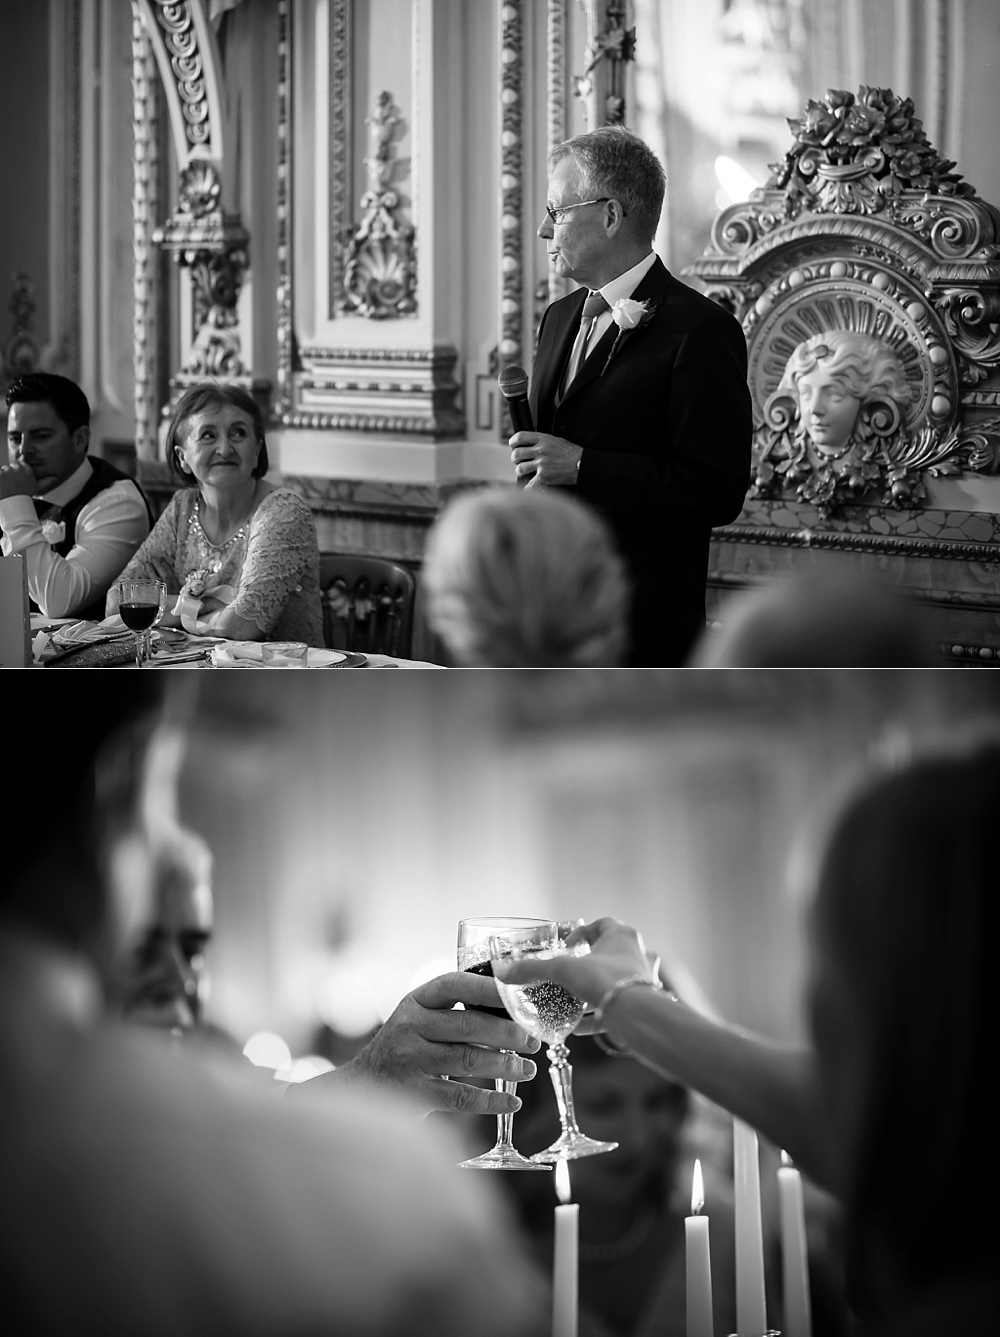 Wedding Photography Malta - Palazzo Parisio - Shane P. Watts Photography